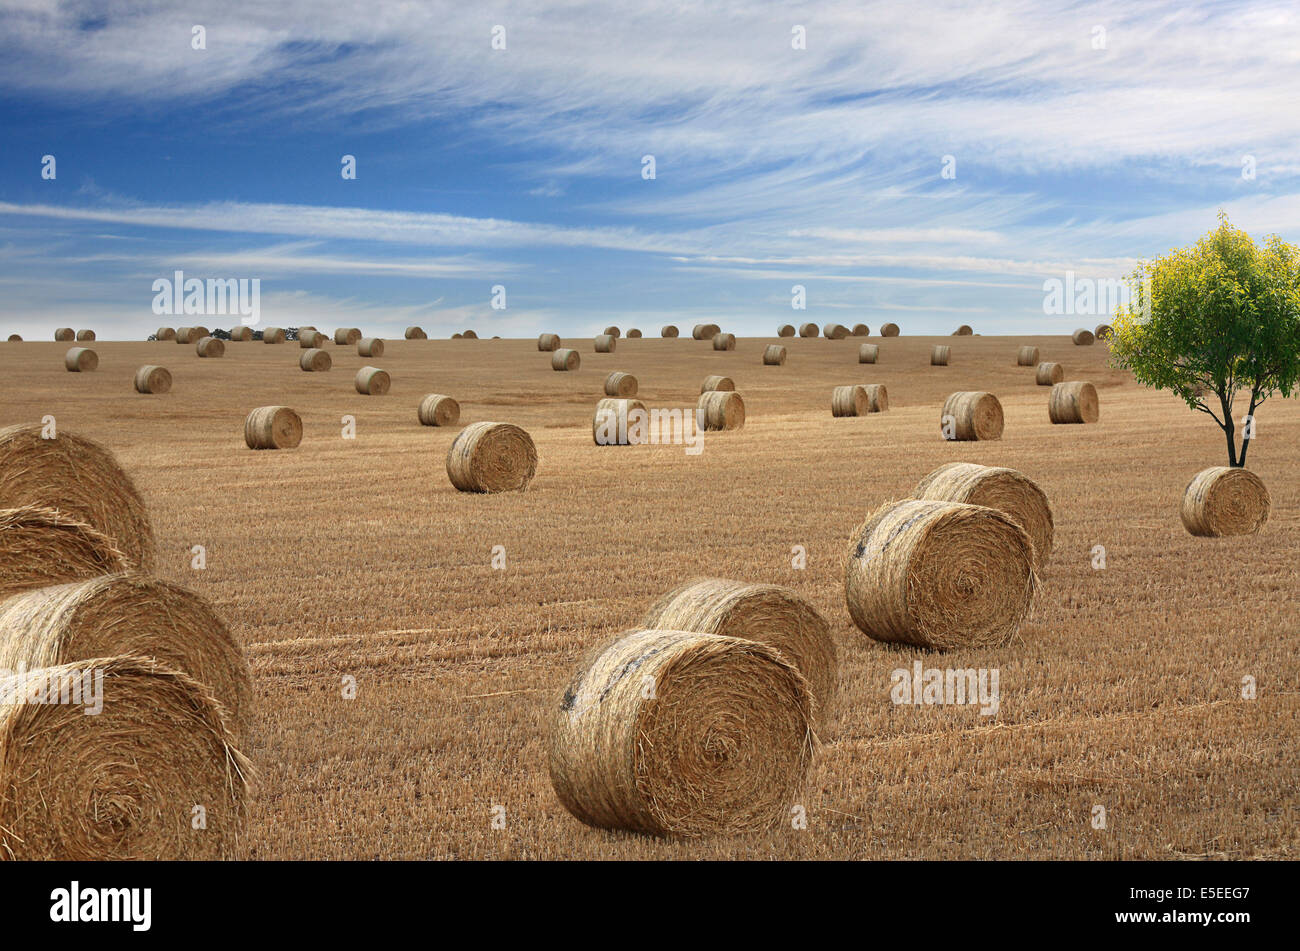 inland Australia a view of freshly rolled hay bales - Stock Image